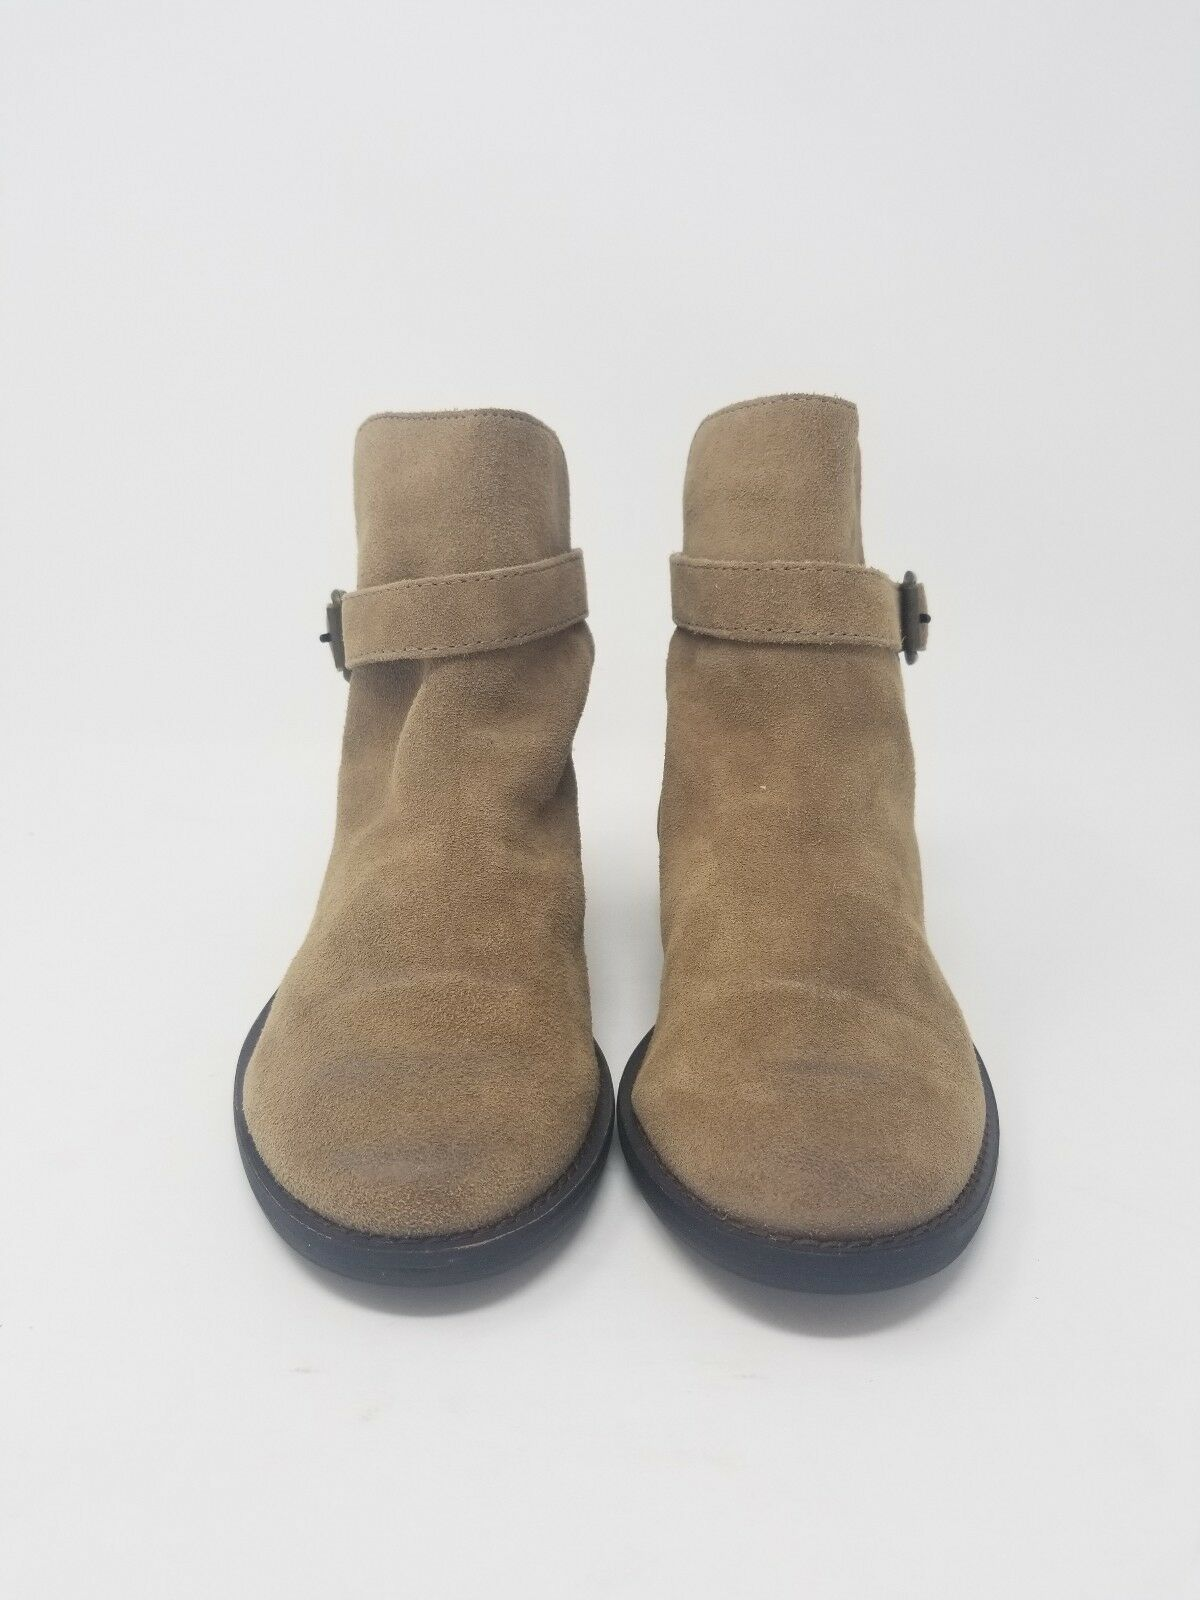 New Sam Edelman Harness Malone Distressed Brown Suede Harness Edelman Ankle Boot US 5 3784f0